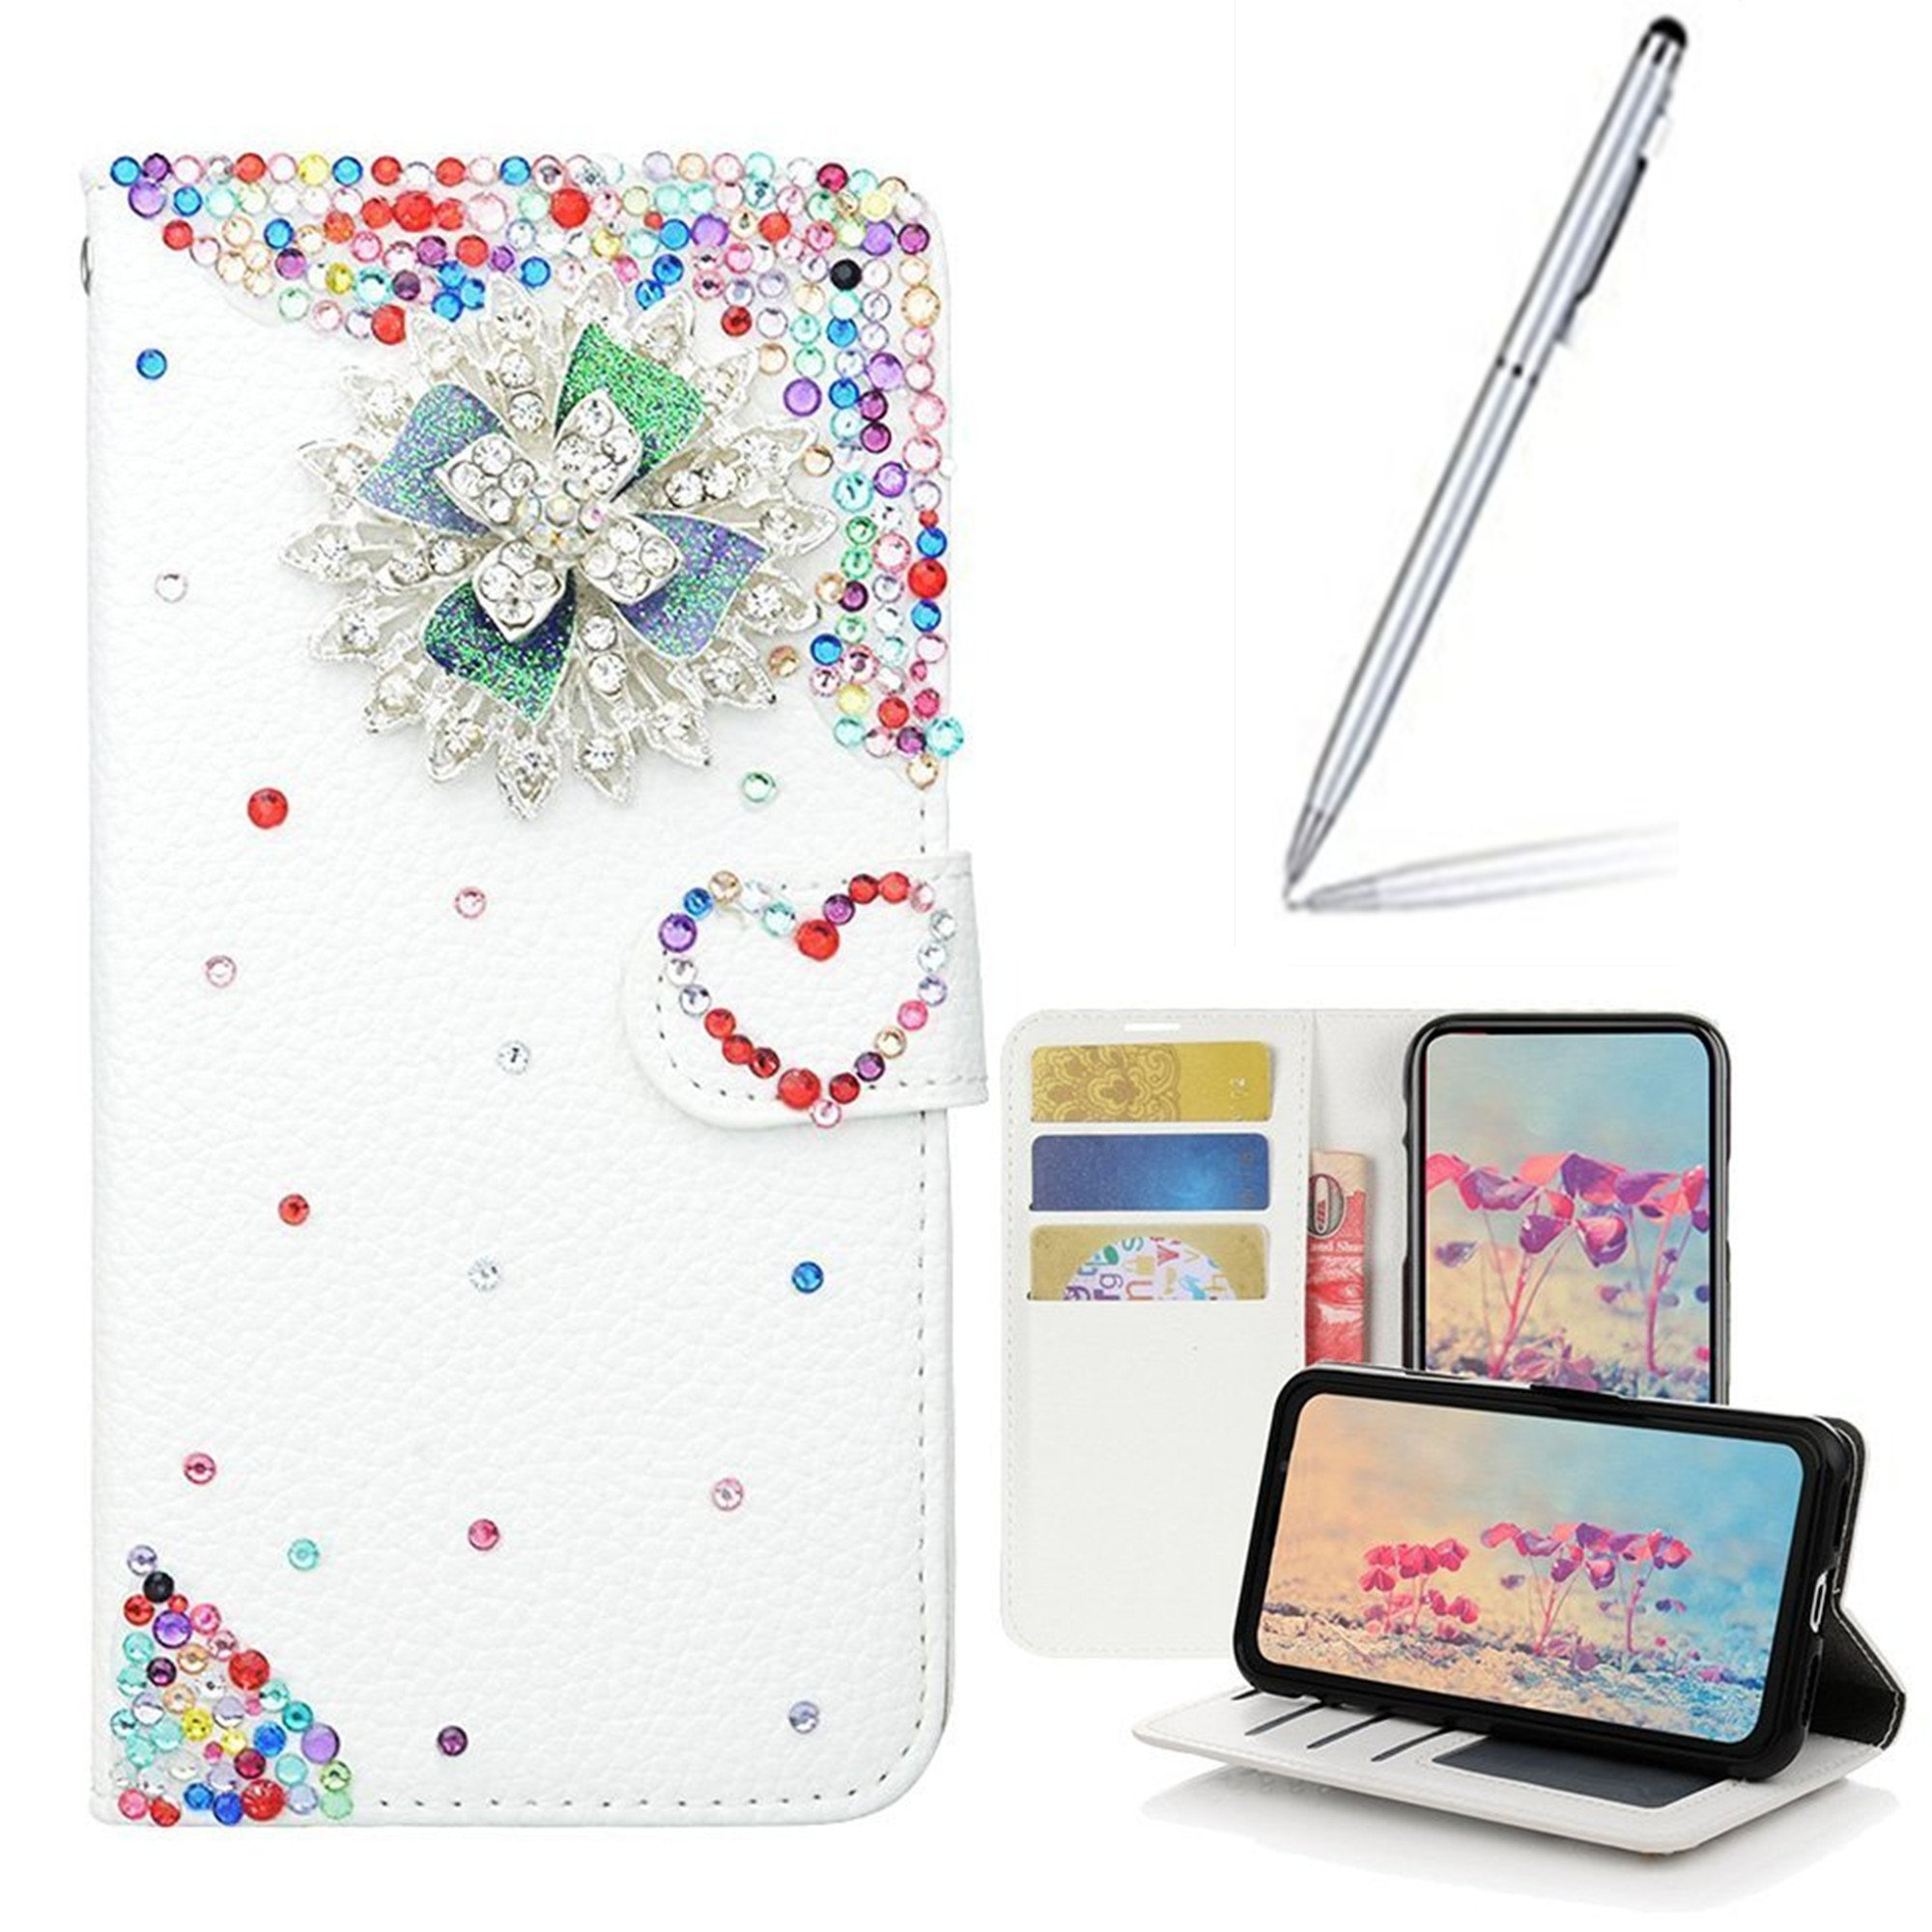 Yaheeda iPhone 8 Plus/7 Plus Case with 2 in 1 Stylus and Ballpoint Pen, [Stand Feature] Butterfly Crystal Wallet Case Premium [Bling Luxury] Leather Flip Cover [Card Slots] For iPhone 8 Plus/7 Plus